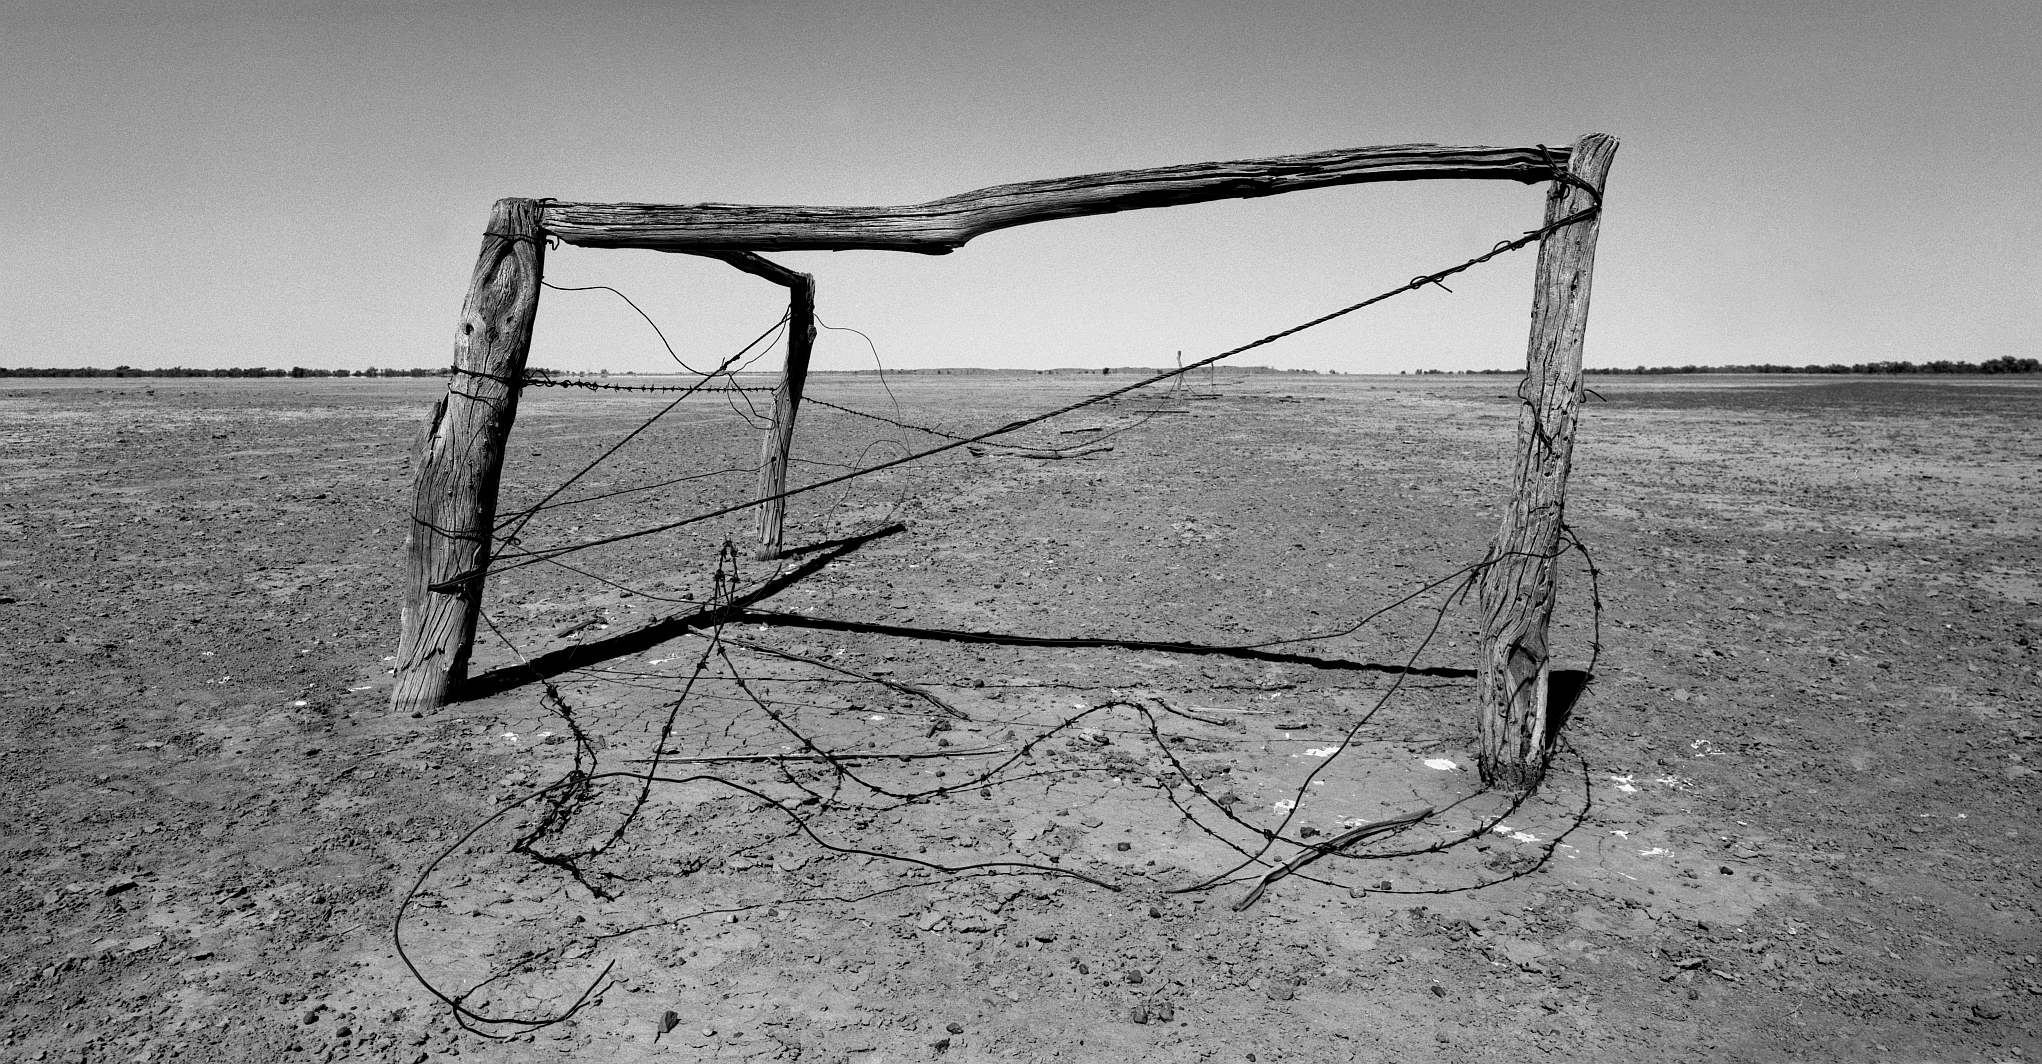 150108_Diamantina_NP_Bronco_Yard_On_Circuit_Track_65_Centre_Filter_FP4+_1140hr_004_Web.jpg